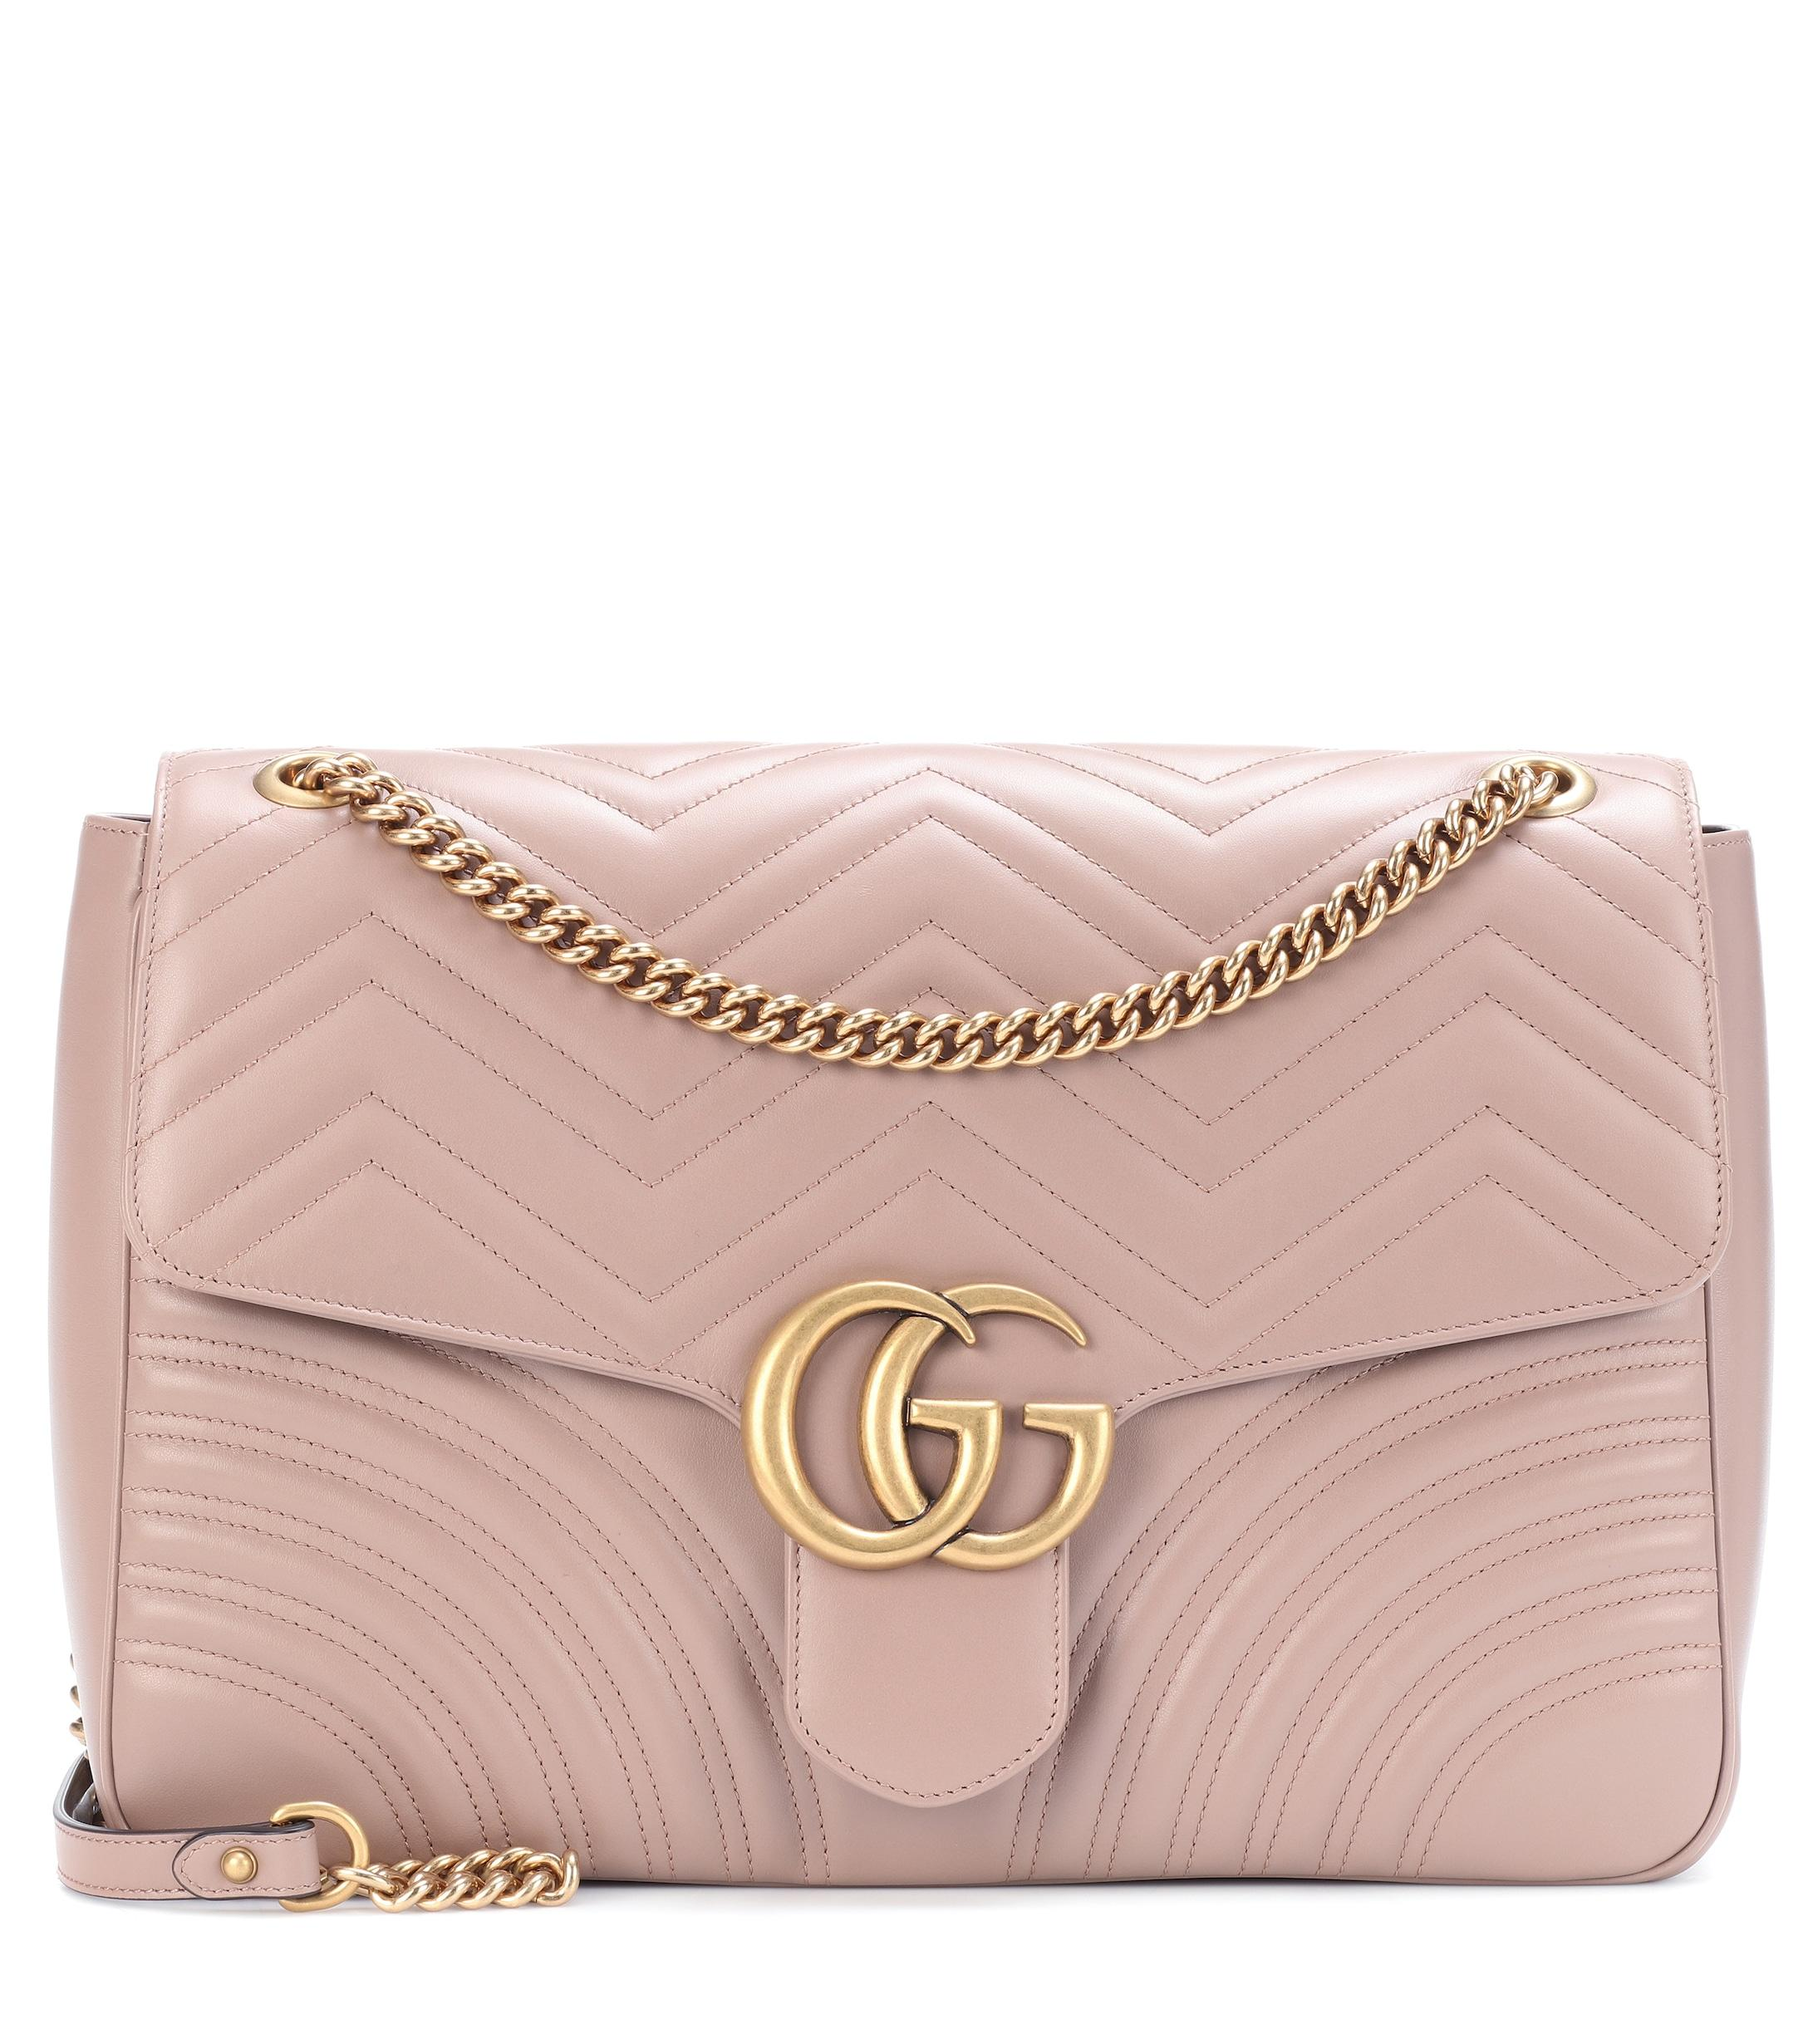 4257415d324 Gucci GG Marmont Large Shoulder Bag in Pink - Lyst